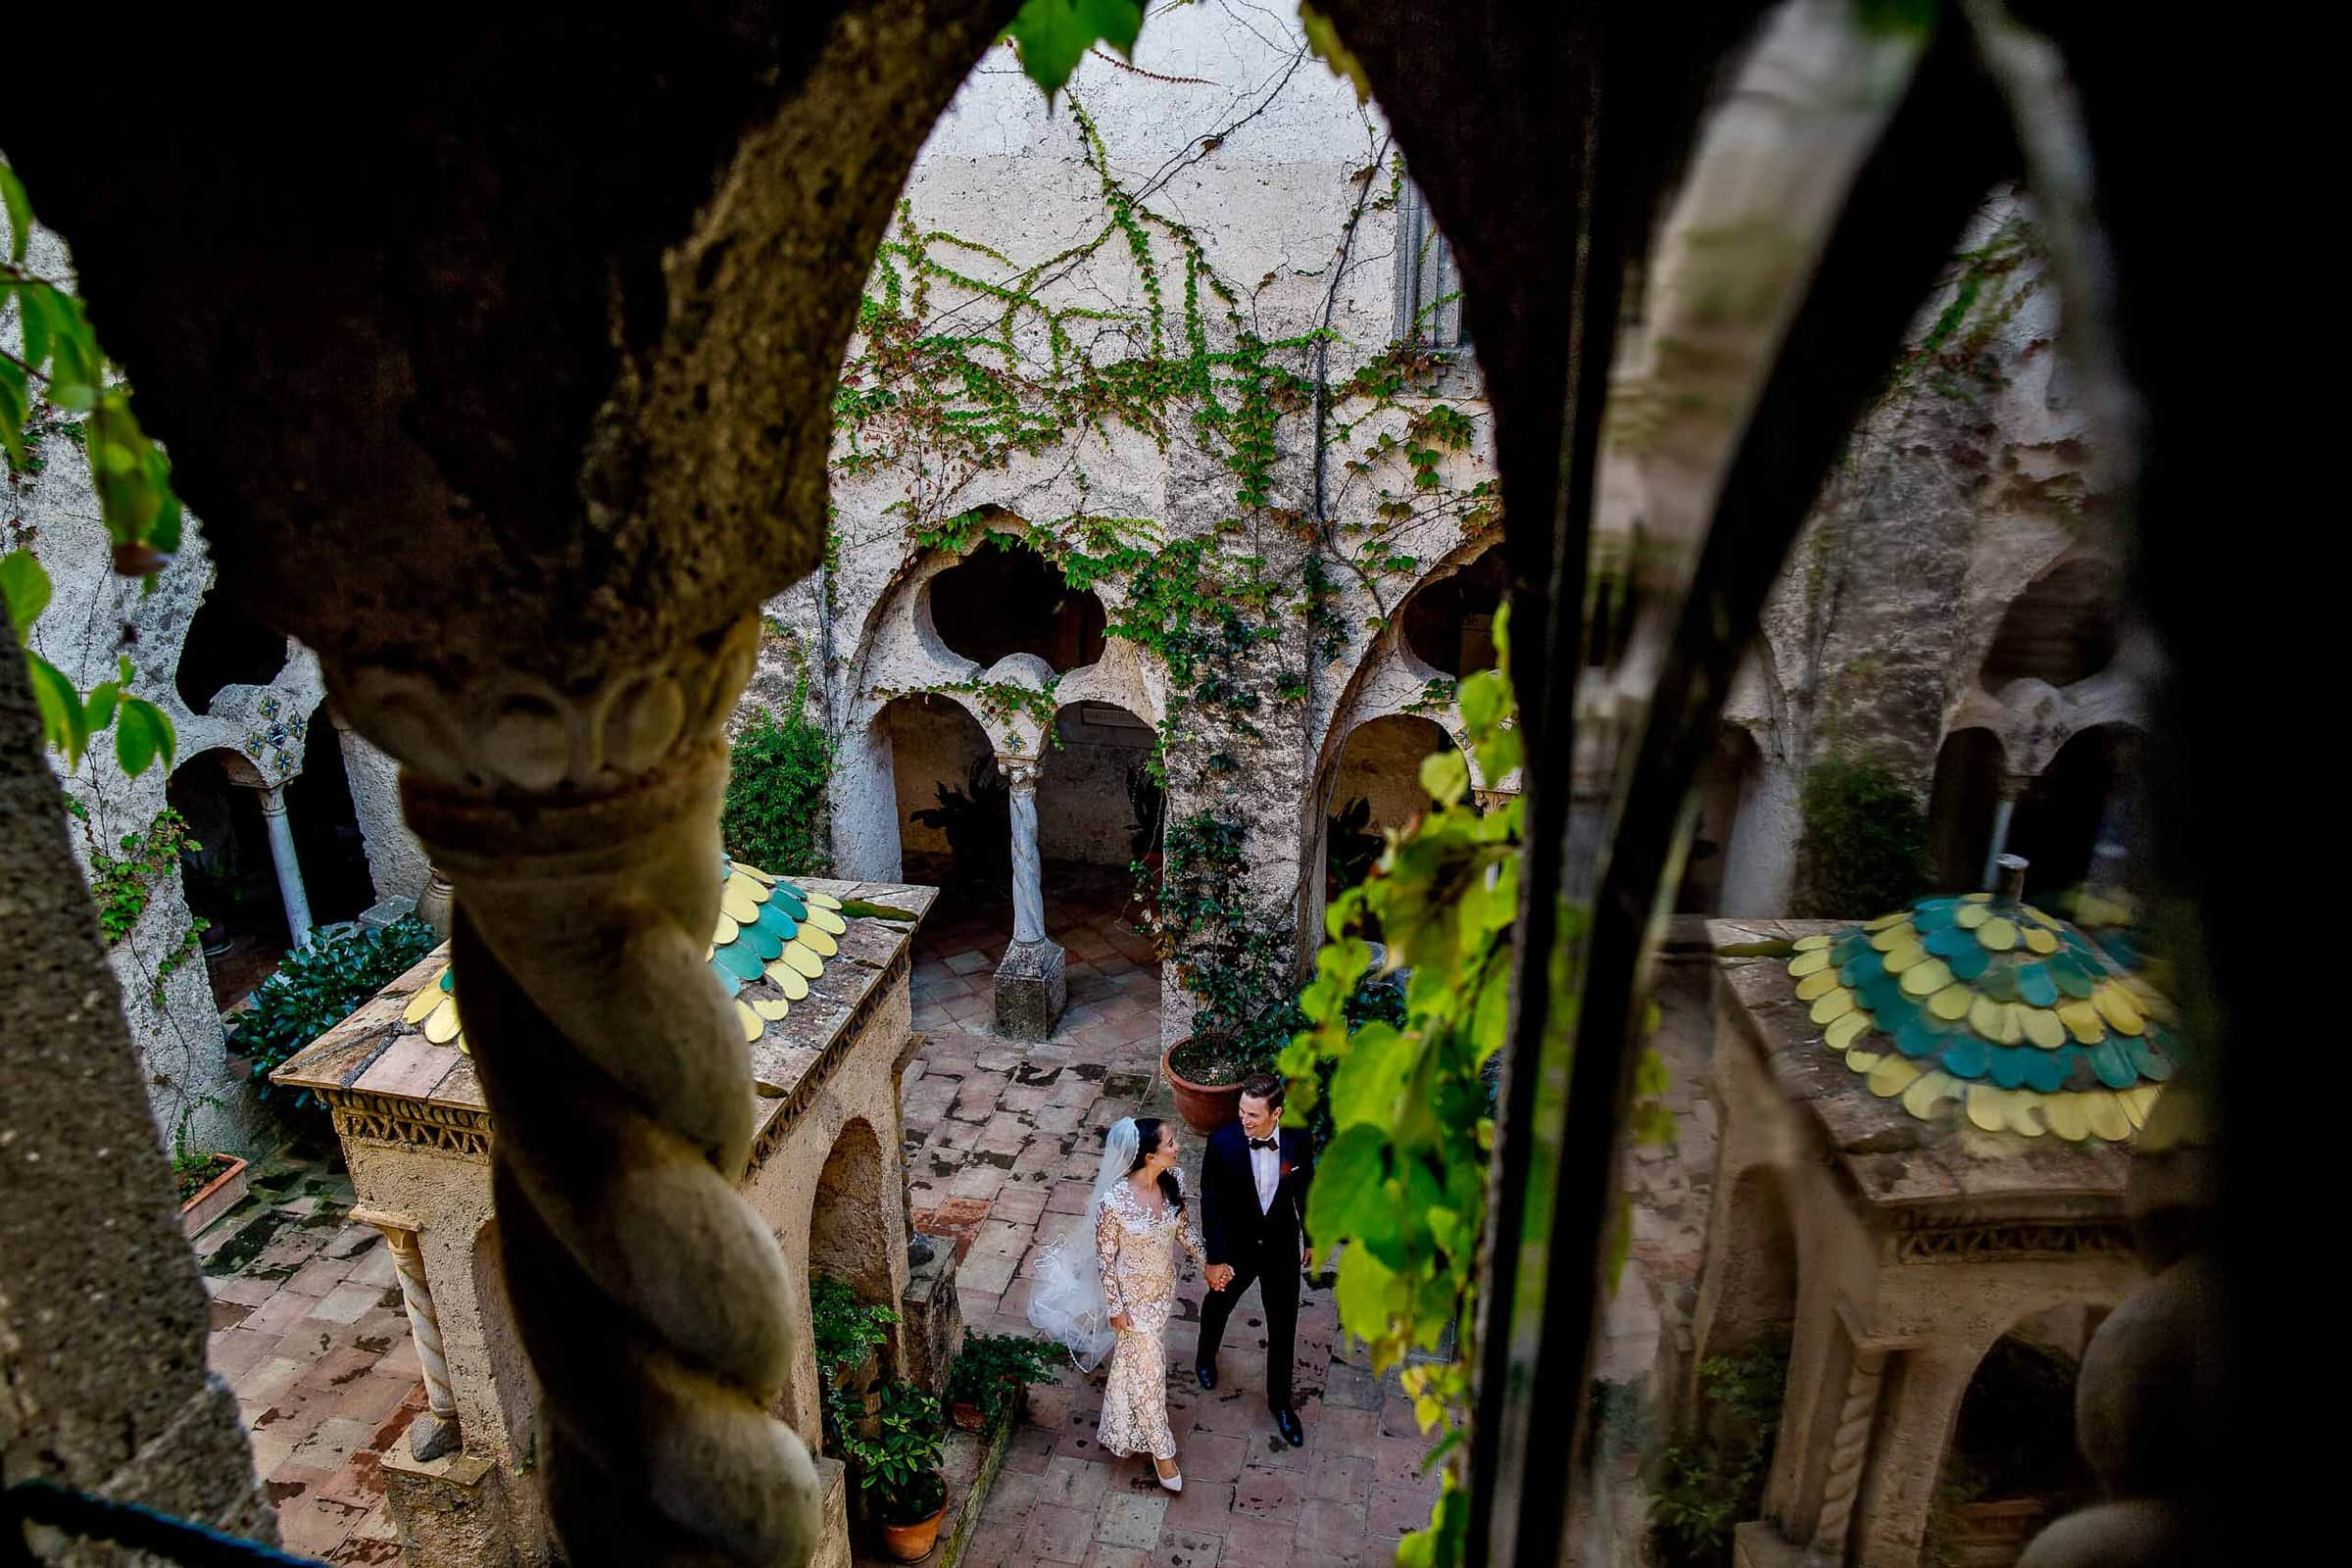 Stunning bride and groom photo at Villa Cimbrone for their Ravello wedding elopement along the Amafi coast in Italy.